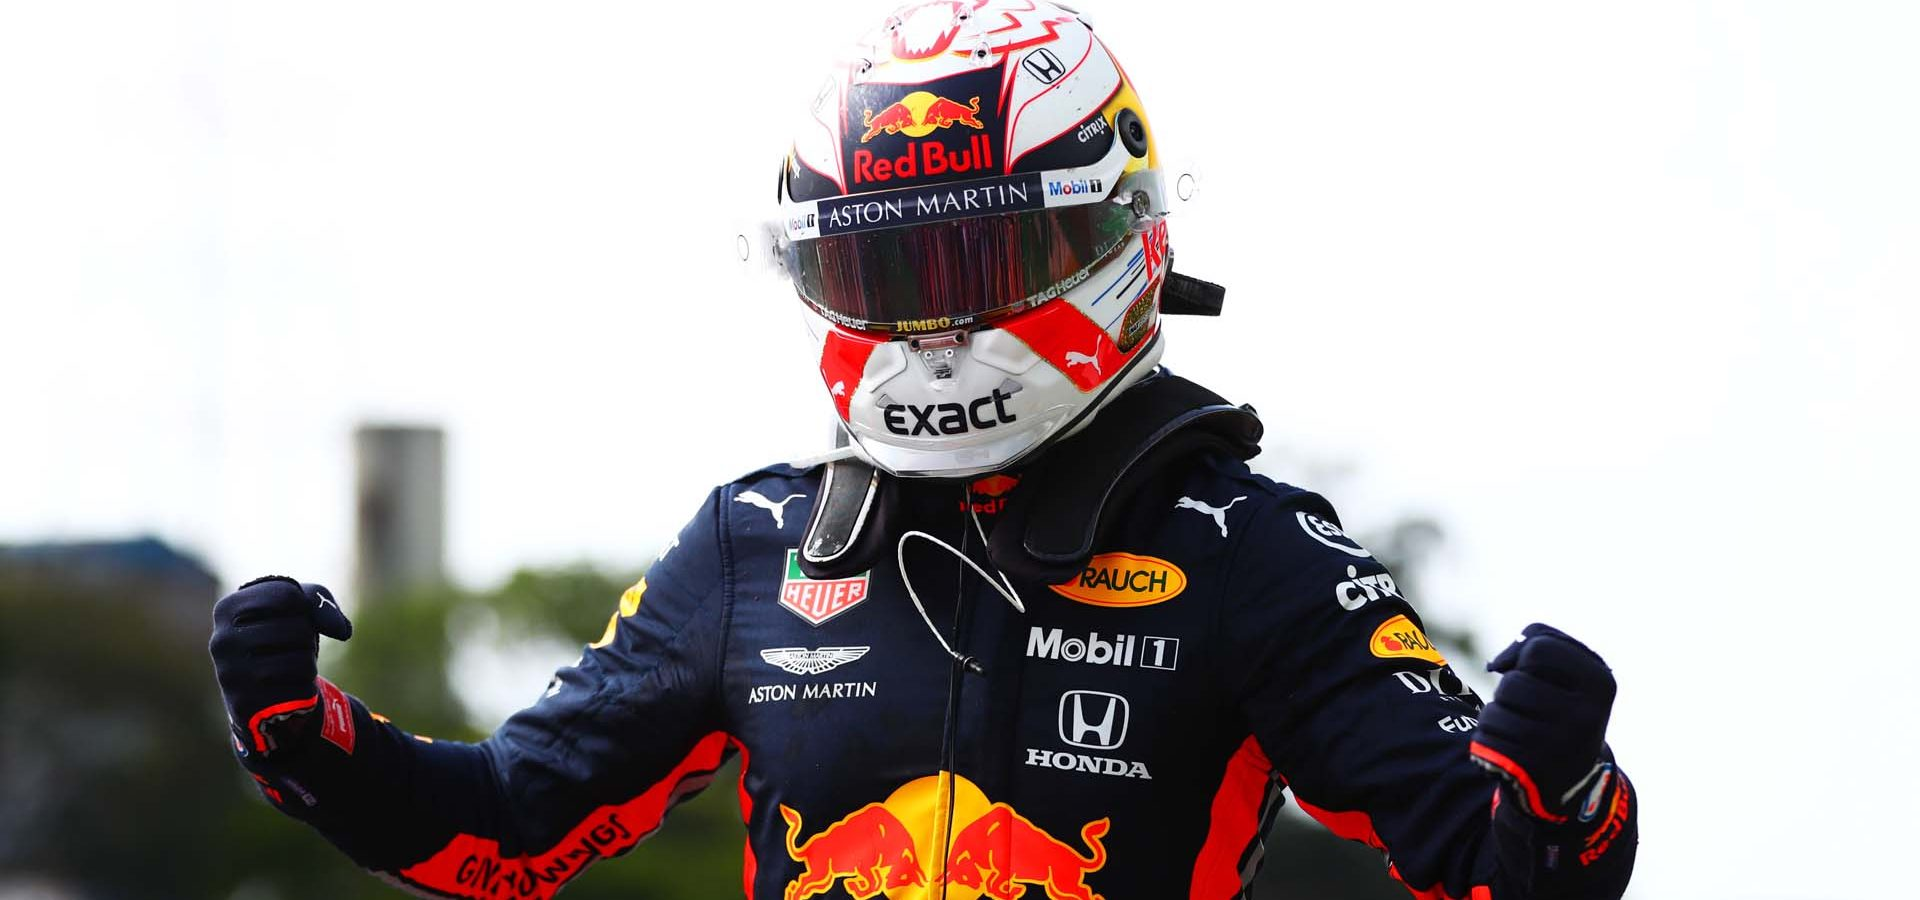 SAO PAULO, BRAZIL - NOVEMBER 17: Race winner Max Verstappen of Netherlands and Red Bull Racing celebrates in parc ferme during the F1 Grand Prix of Brazil at Autodromo Jose Carlos Pace on November 17, 2019 in Sao Paulo, Brazil. (Photo by Dan Istitene/Getty Images) // Getty Images / Red Bull Content Pool  // AP-227DHWXKS1W11 // Usage for editorial use only //